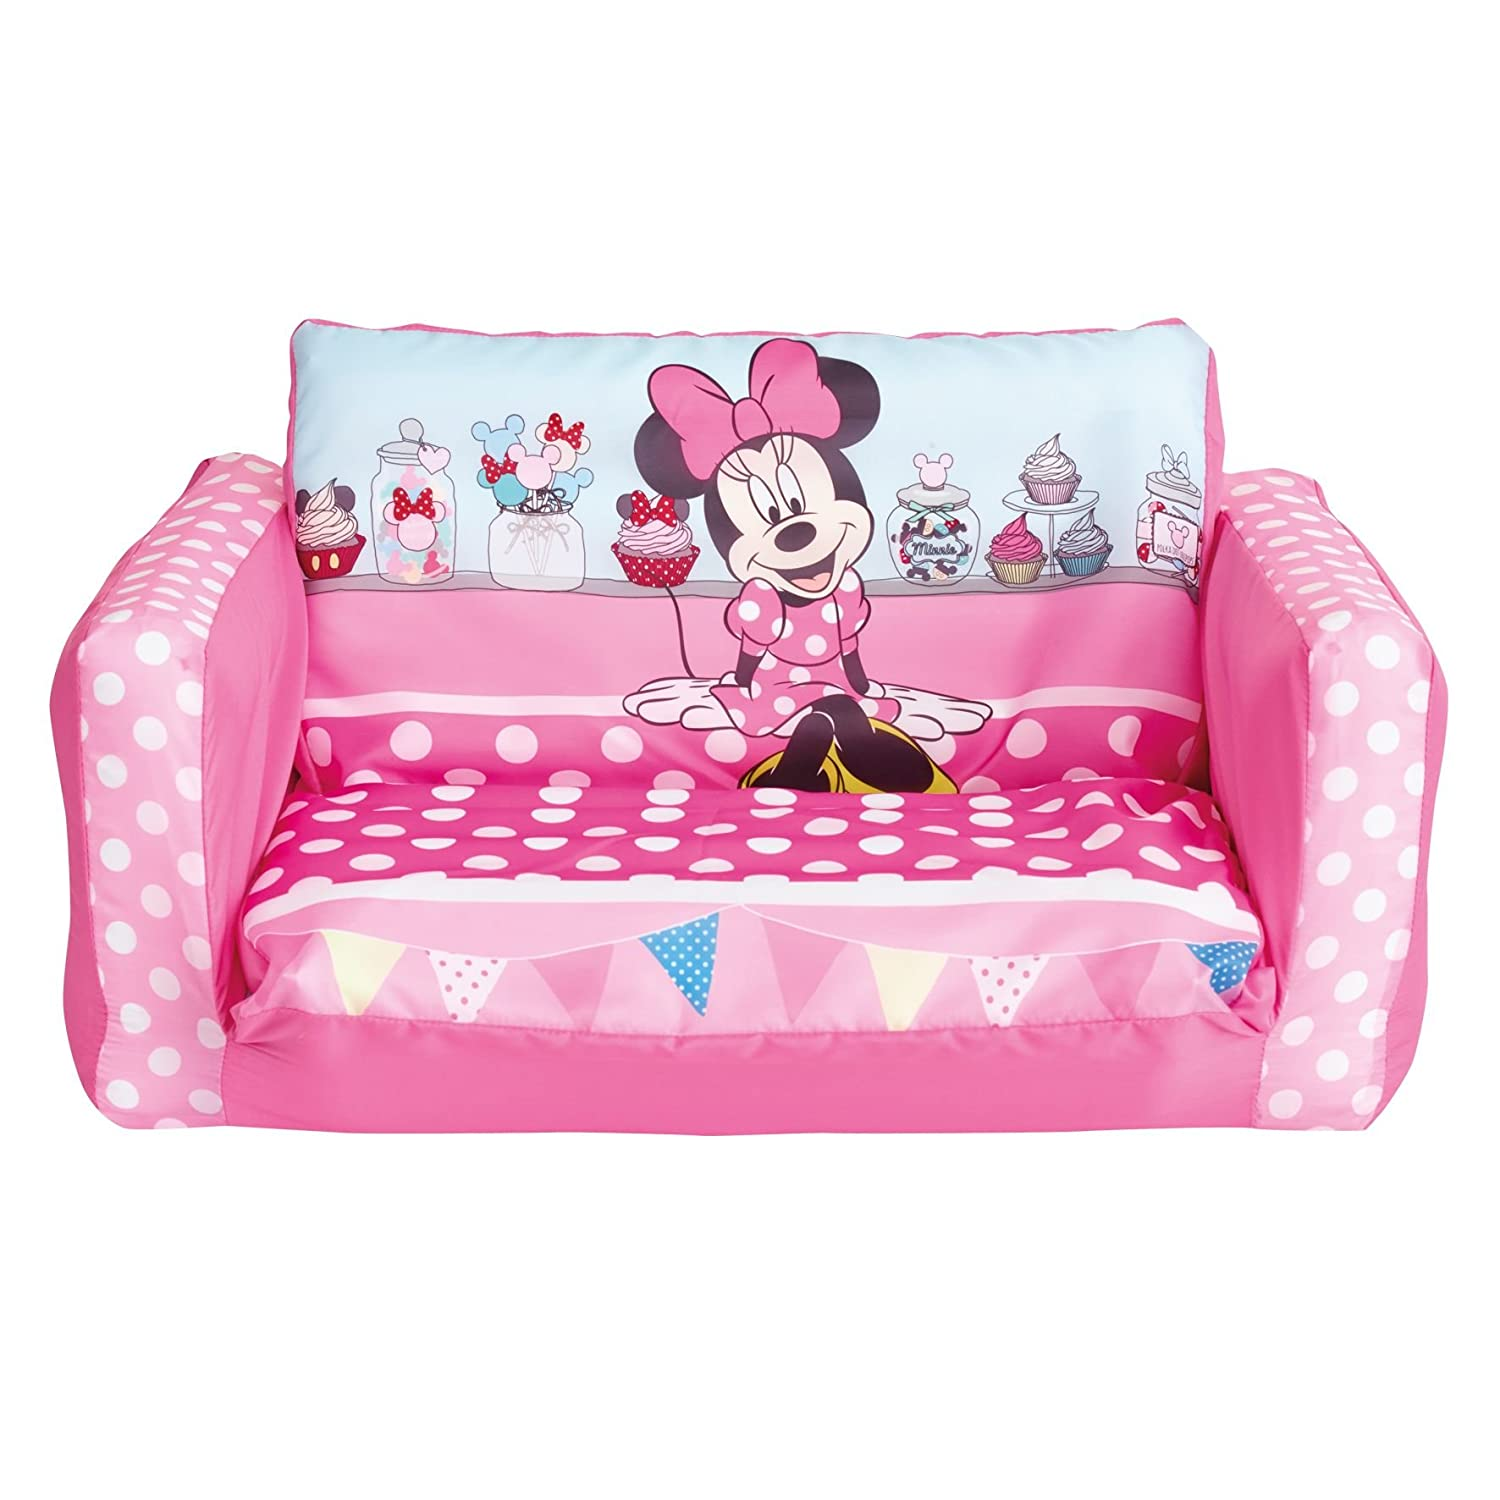 Minnie Mouse Flip Out Mini Sofa Plastic Pink Amazon